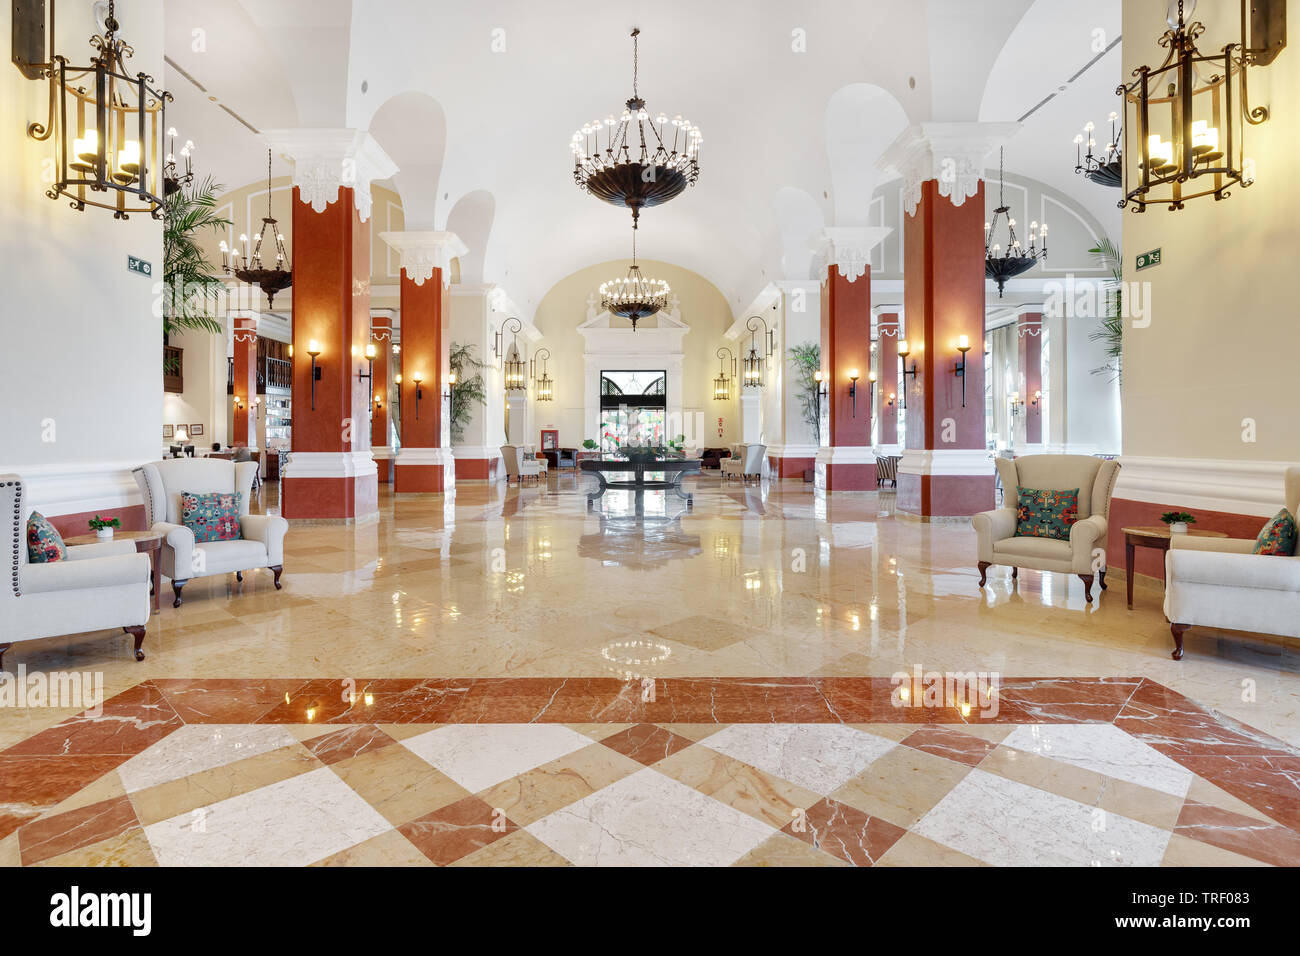 A beautiful lobby inside of the Valentin Imperial Maya all inclusive resort with organized decorations, seating, and chandeliers. - Stock Image